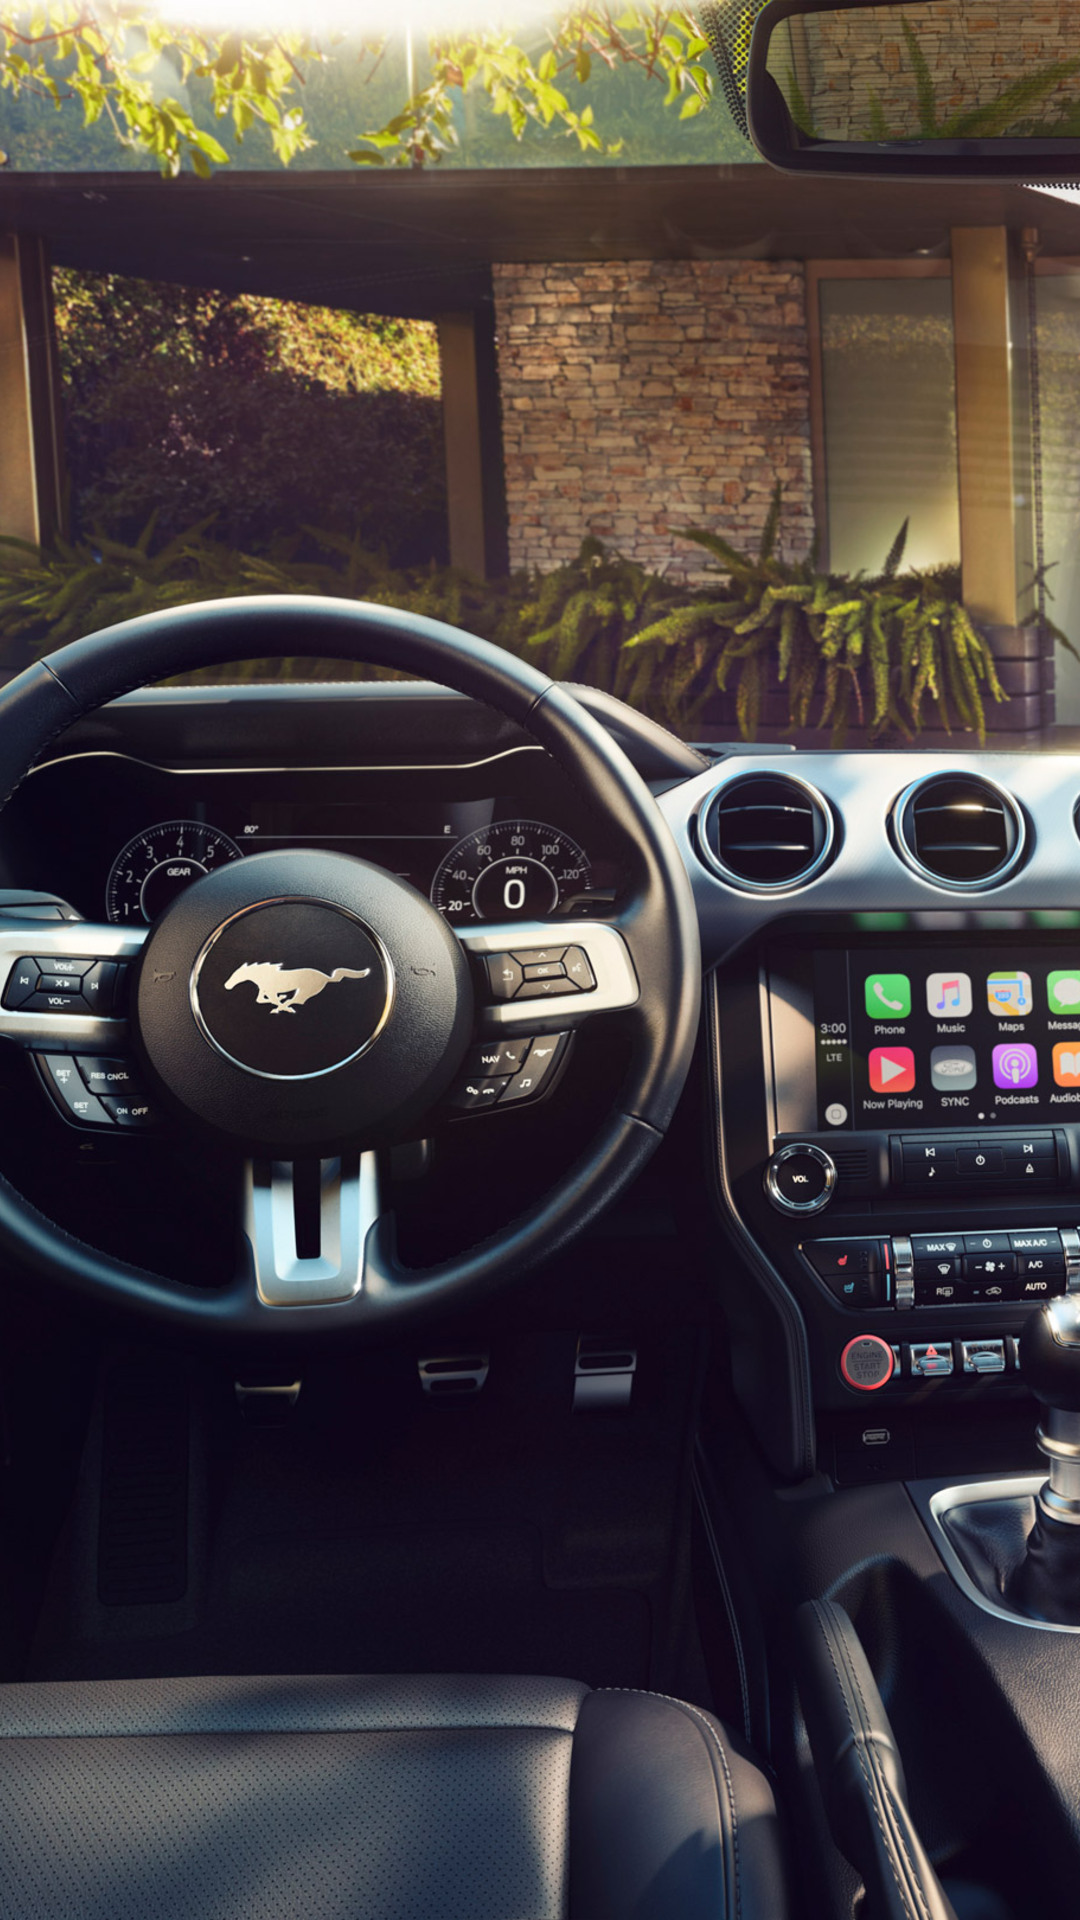 2018-ford-mustang-interior-wide.jpg